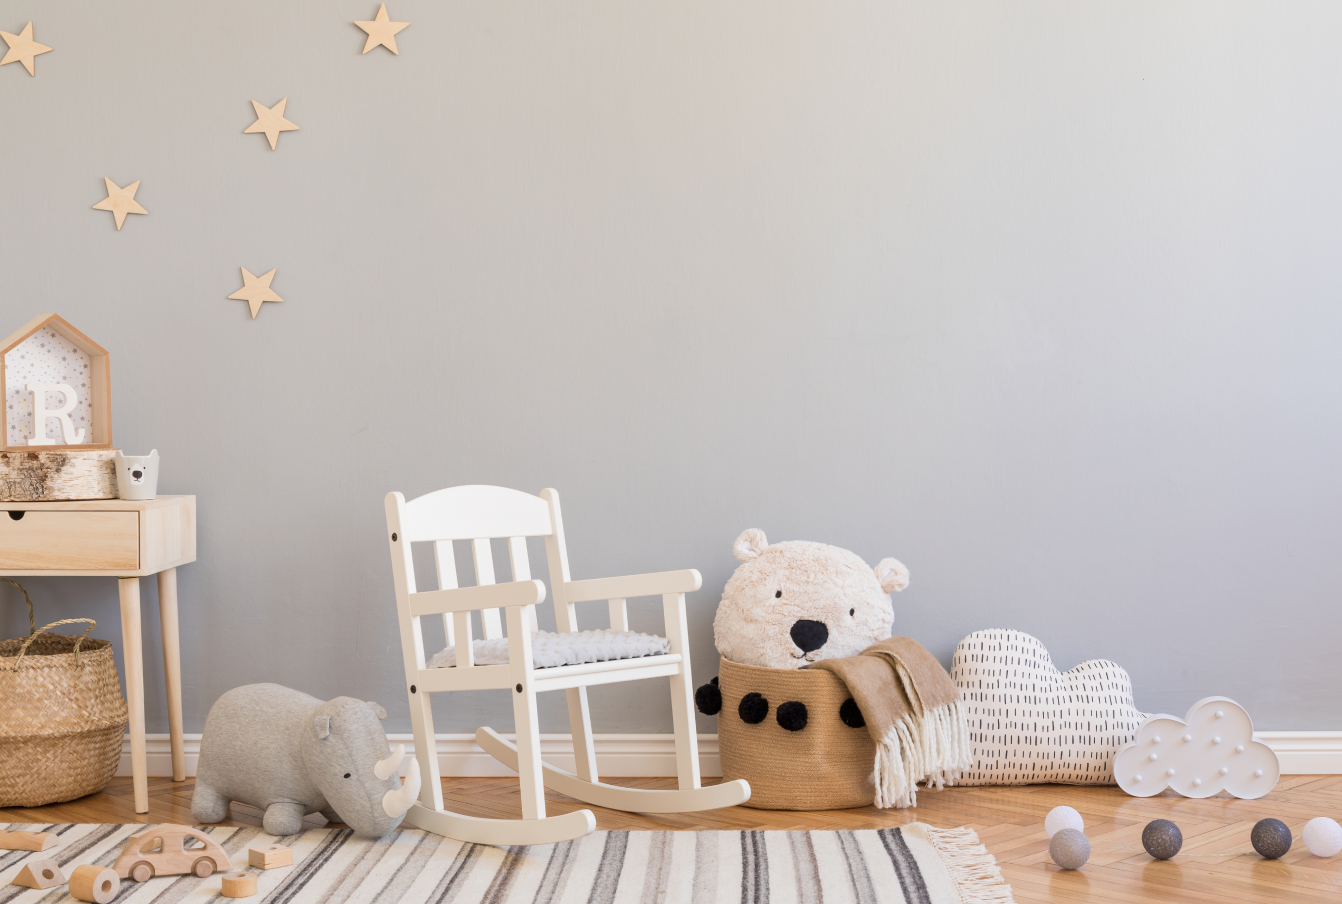 A room full of eco-friendly gifts for babies.